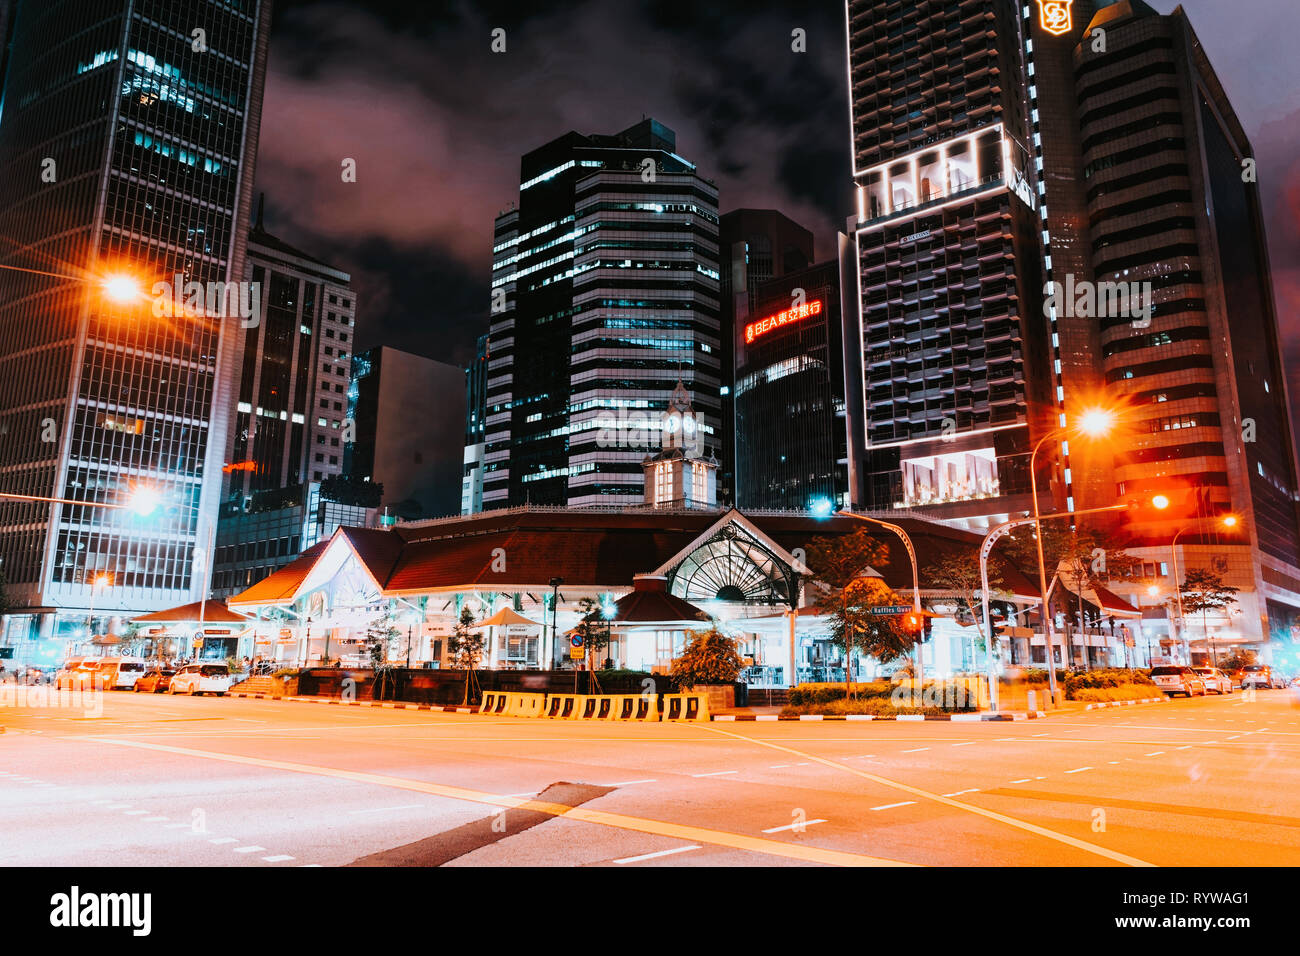 Singapore, Singapore - February 29, 2016: Telok Ayer Market and Singapore Stock Exchange building late in evening in Singapore - Stock Image